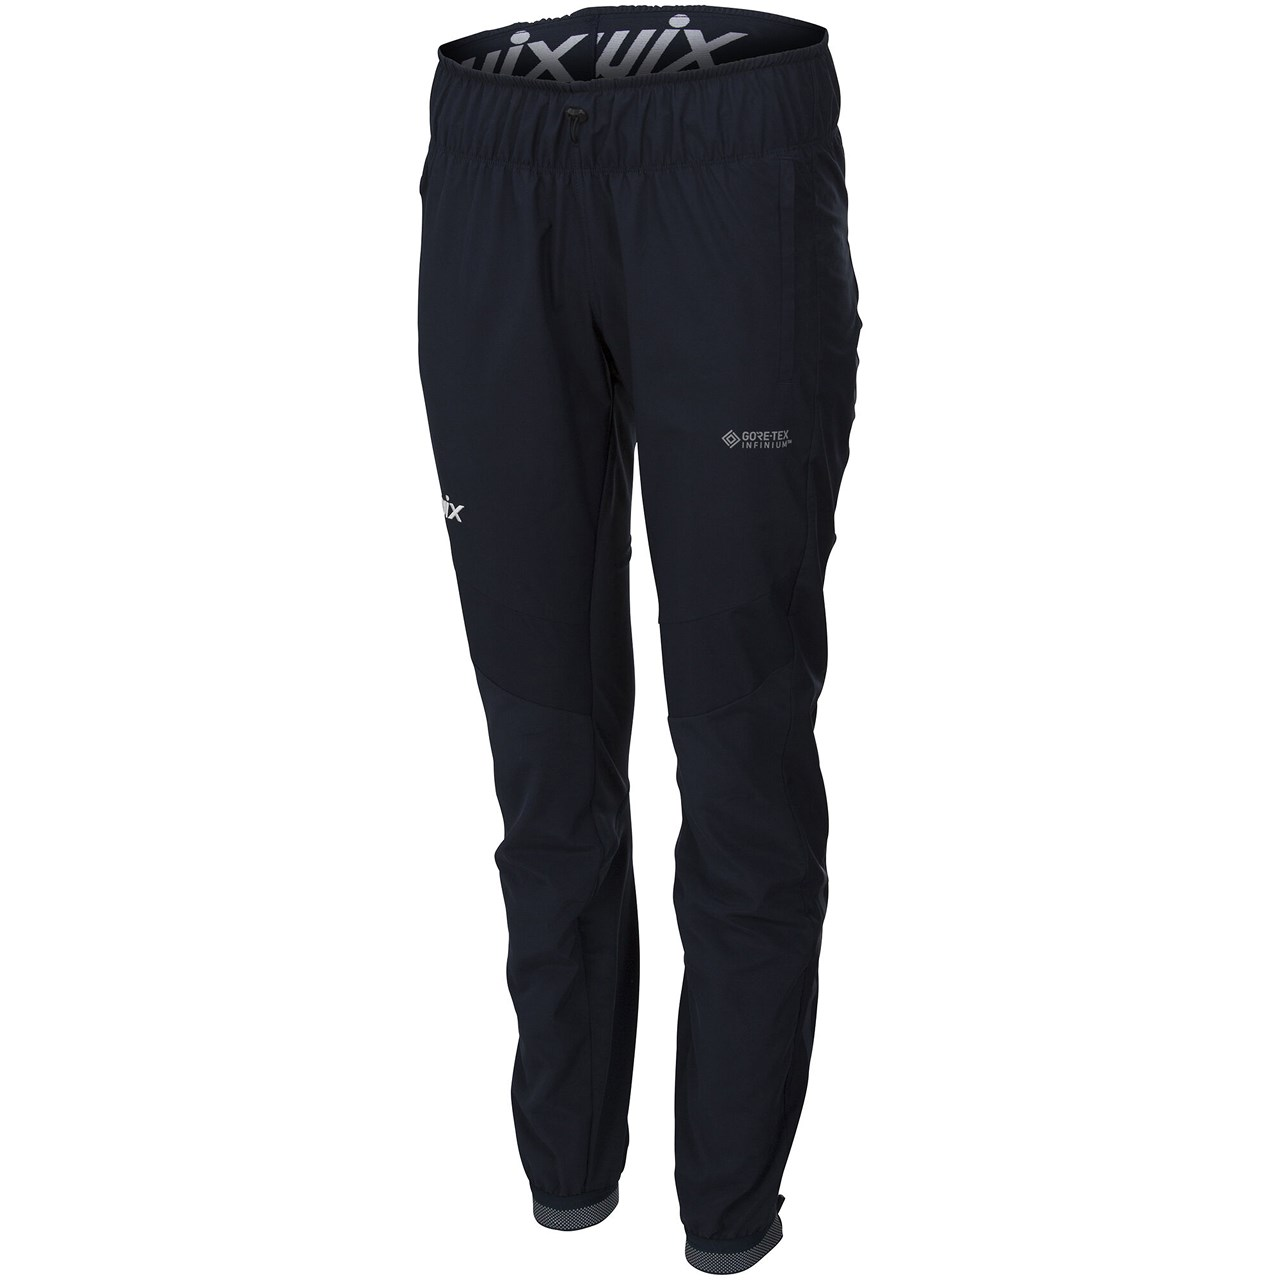 Swix Evolution g-tex infinitum pants